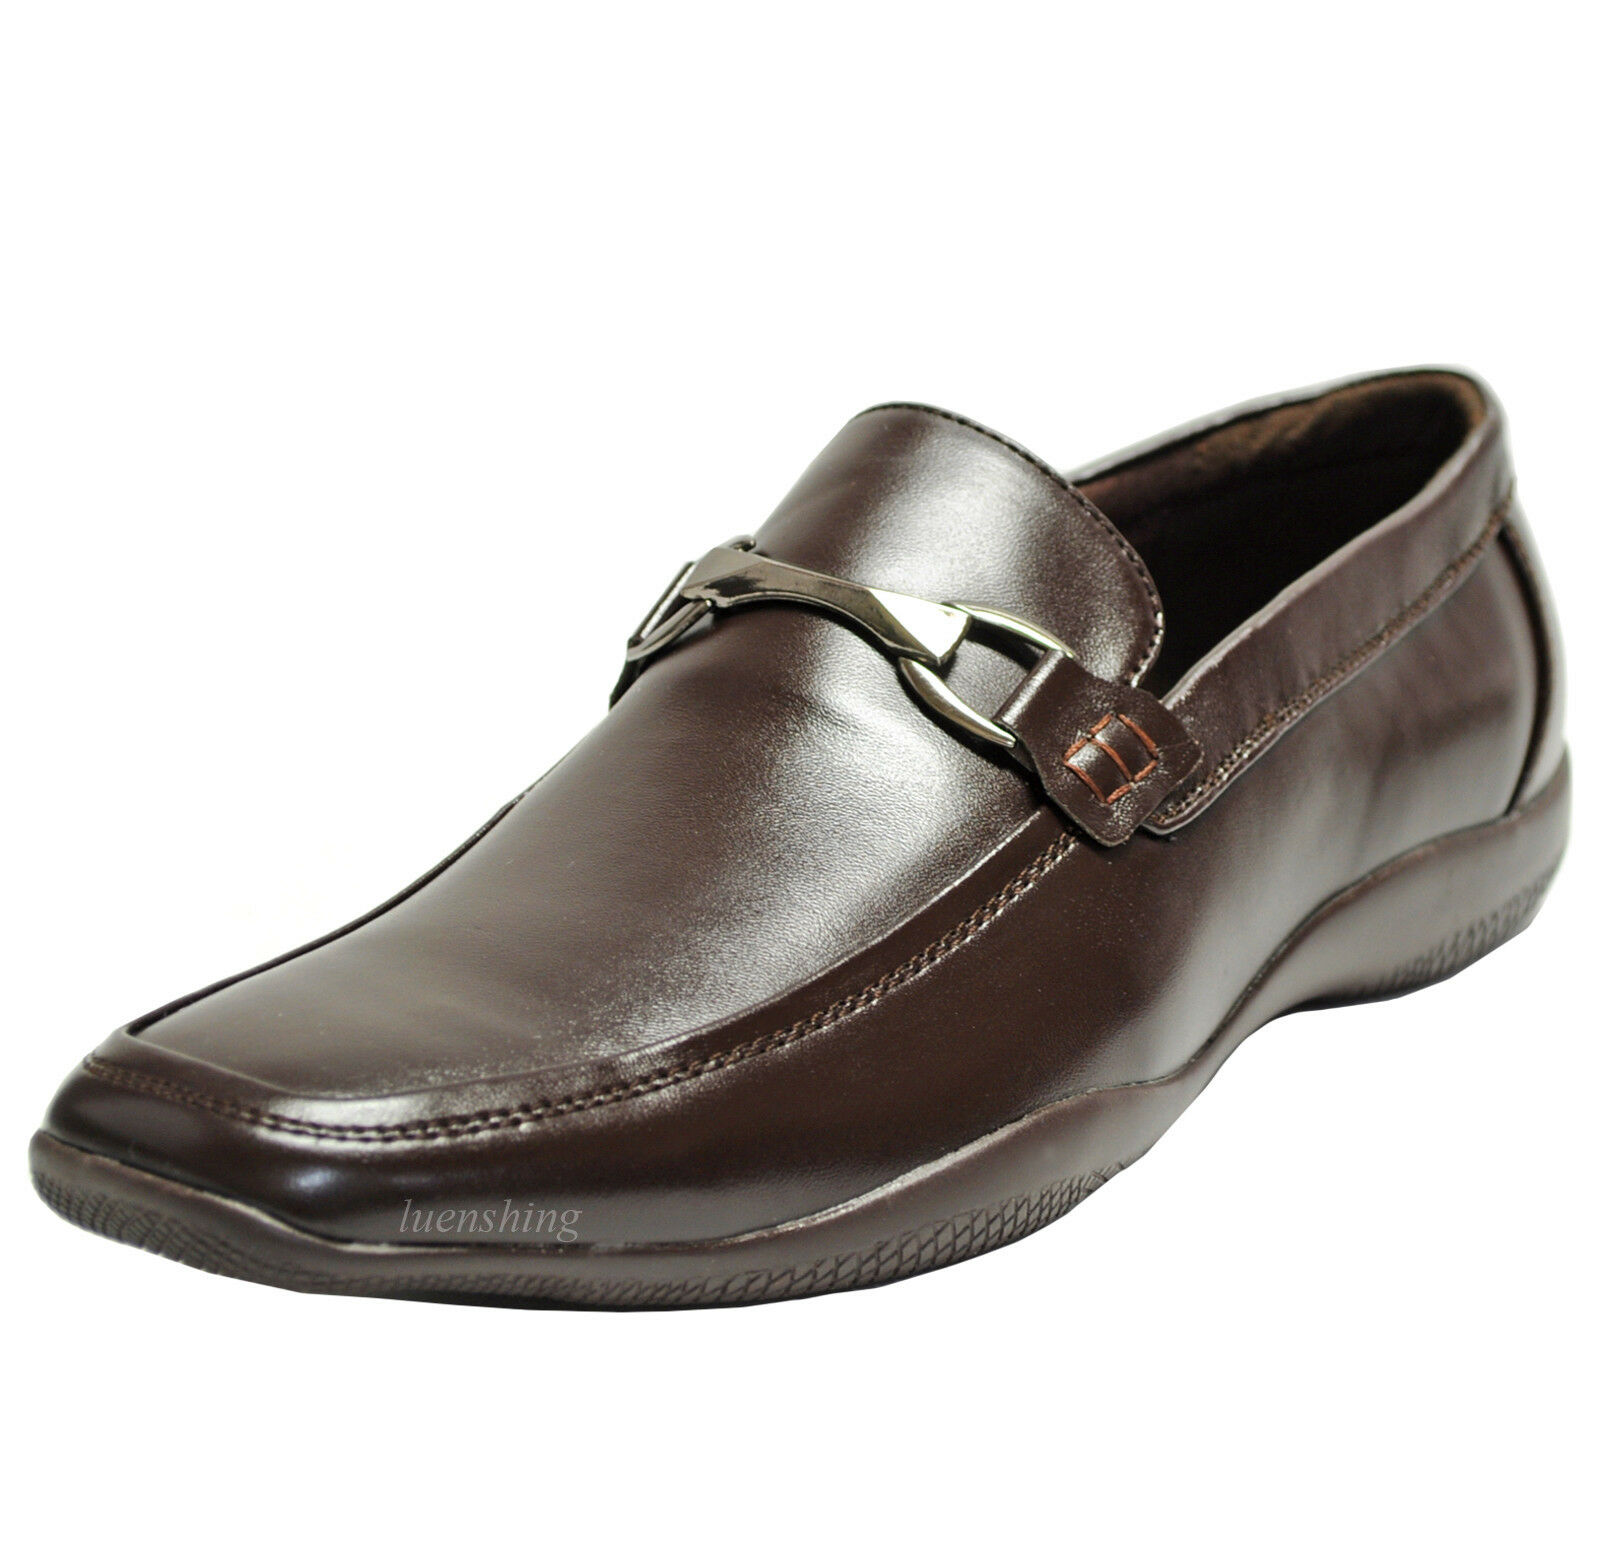 New men's shoes casual fashion slip on style loafers leather like brown